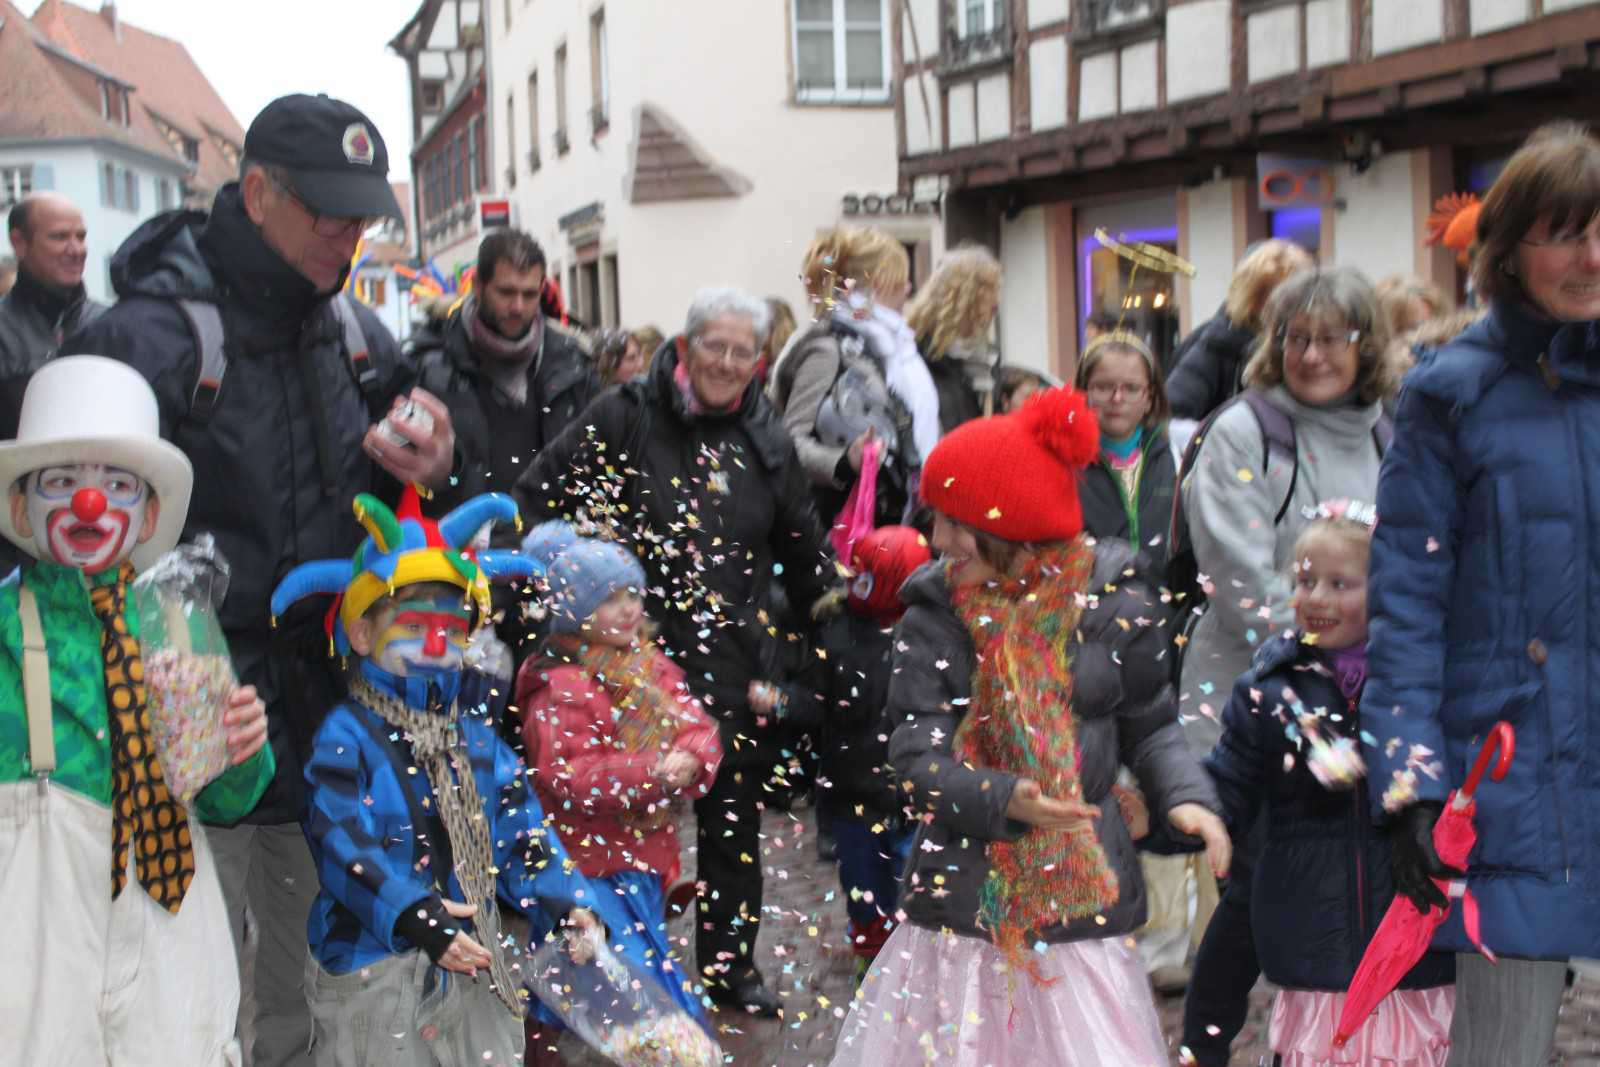 27022015 - Carnaval selection (5)